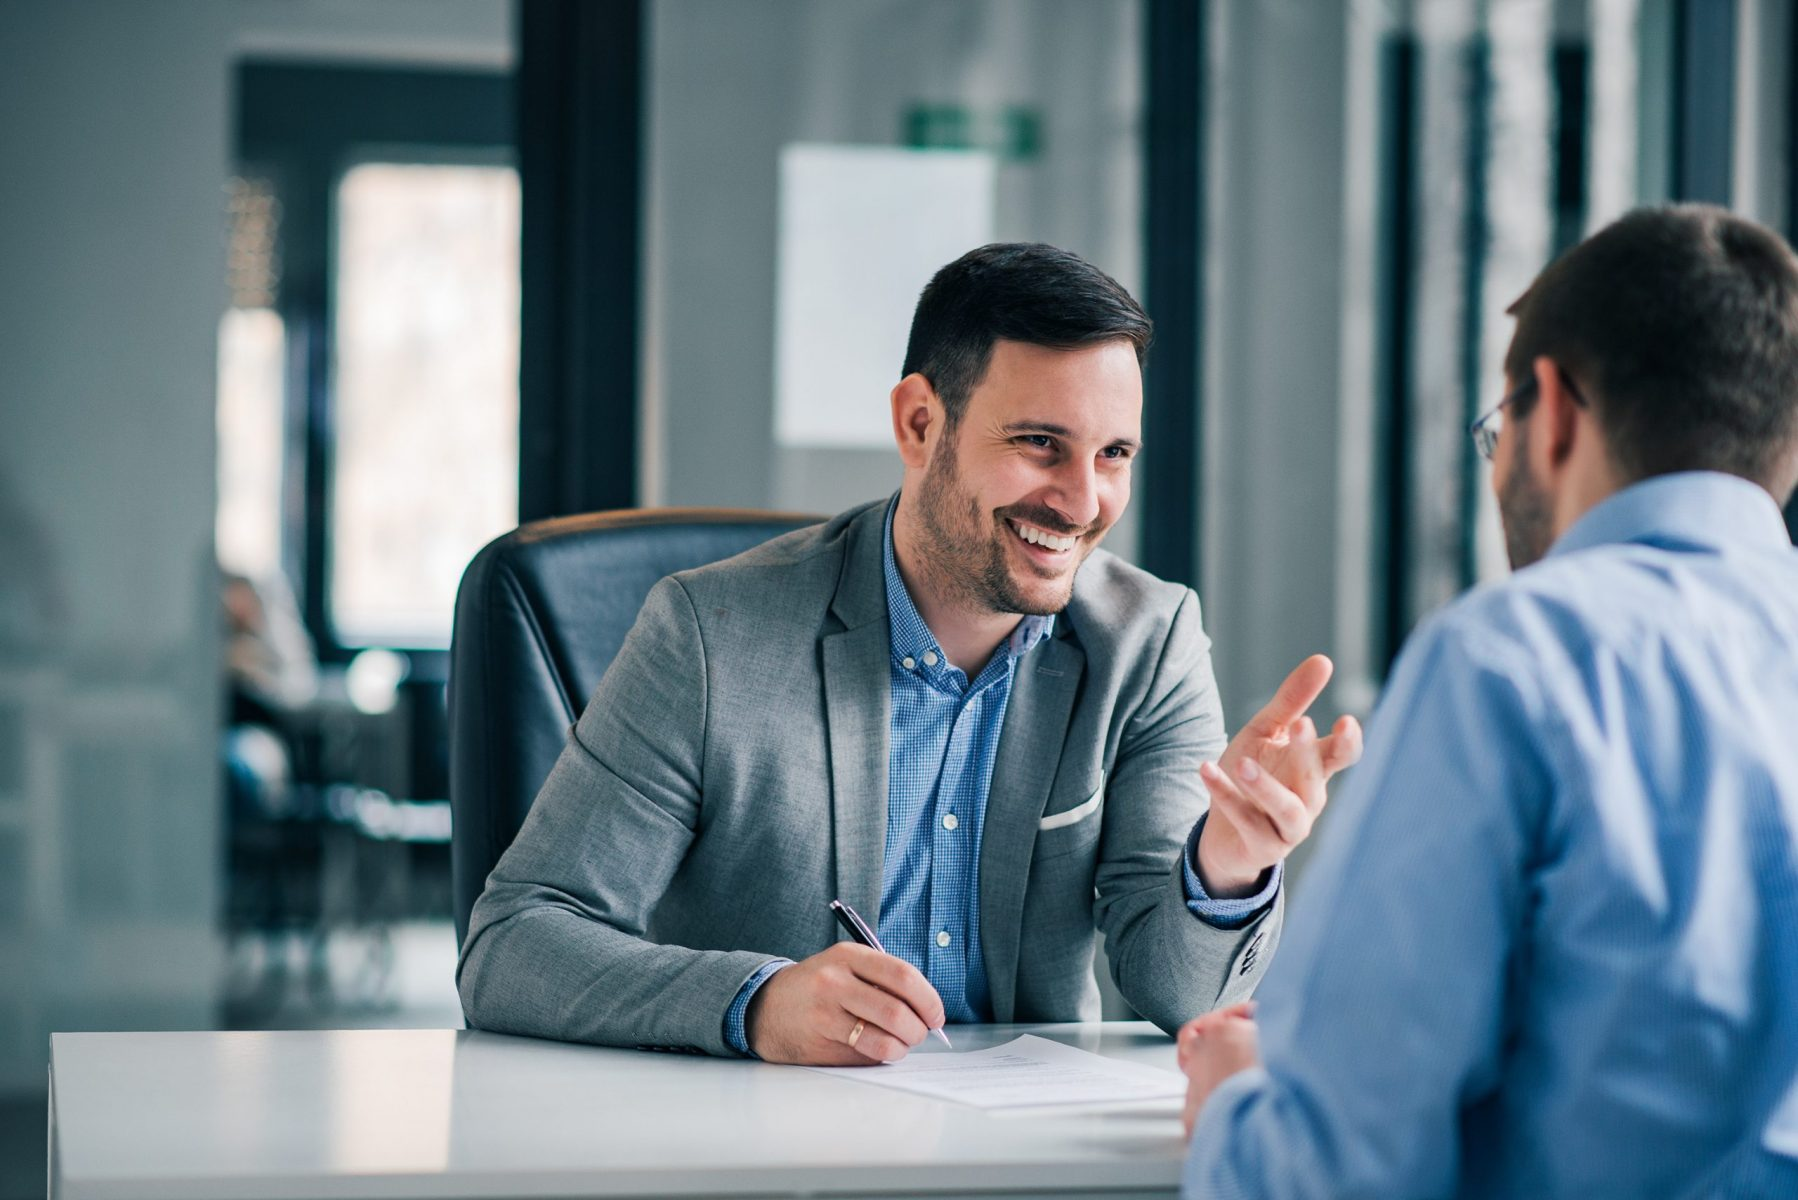 Business meeting. Our Salesforce experts design and implement large scale, integrated digital solutions that support growth and a seamless customer experience. To find out more about Venerate Solutions, a salesforce partner, simply get in touch on 0118 949 8973